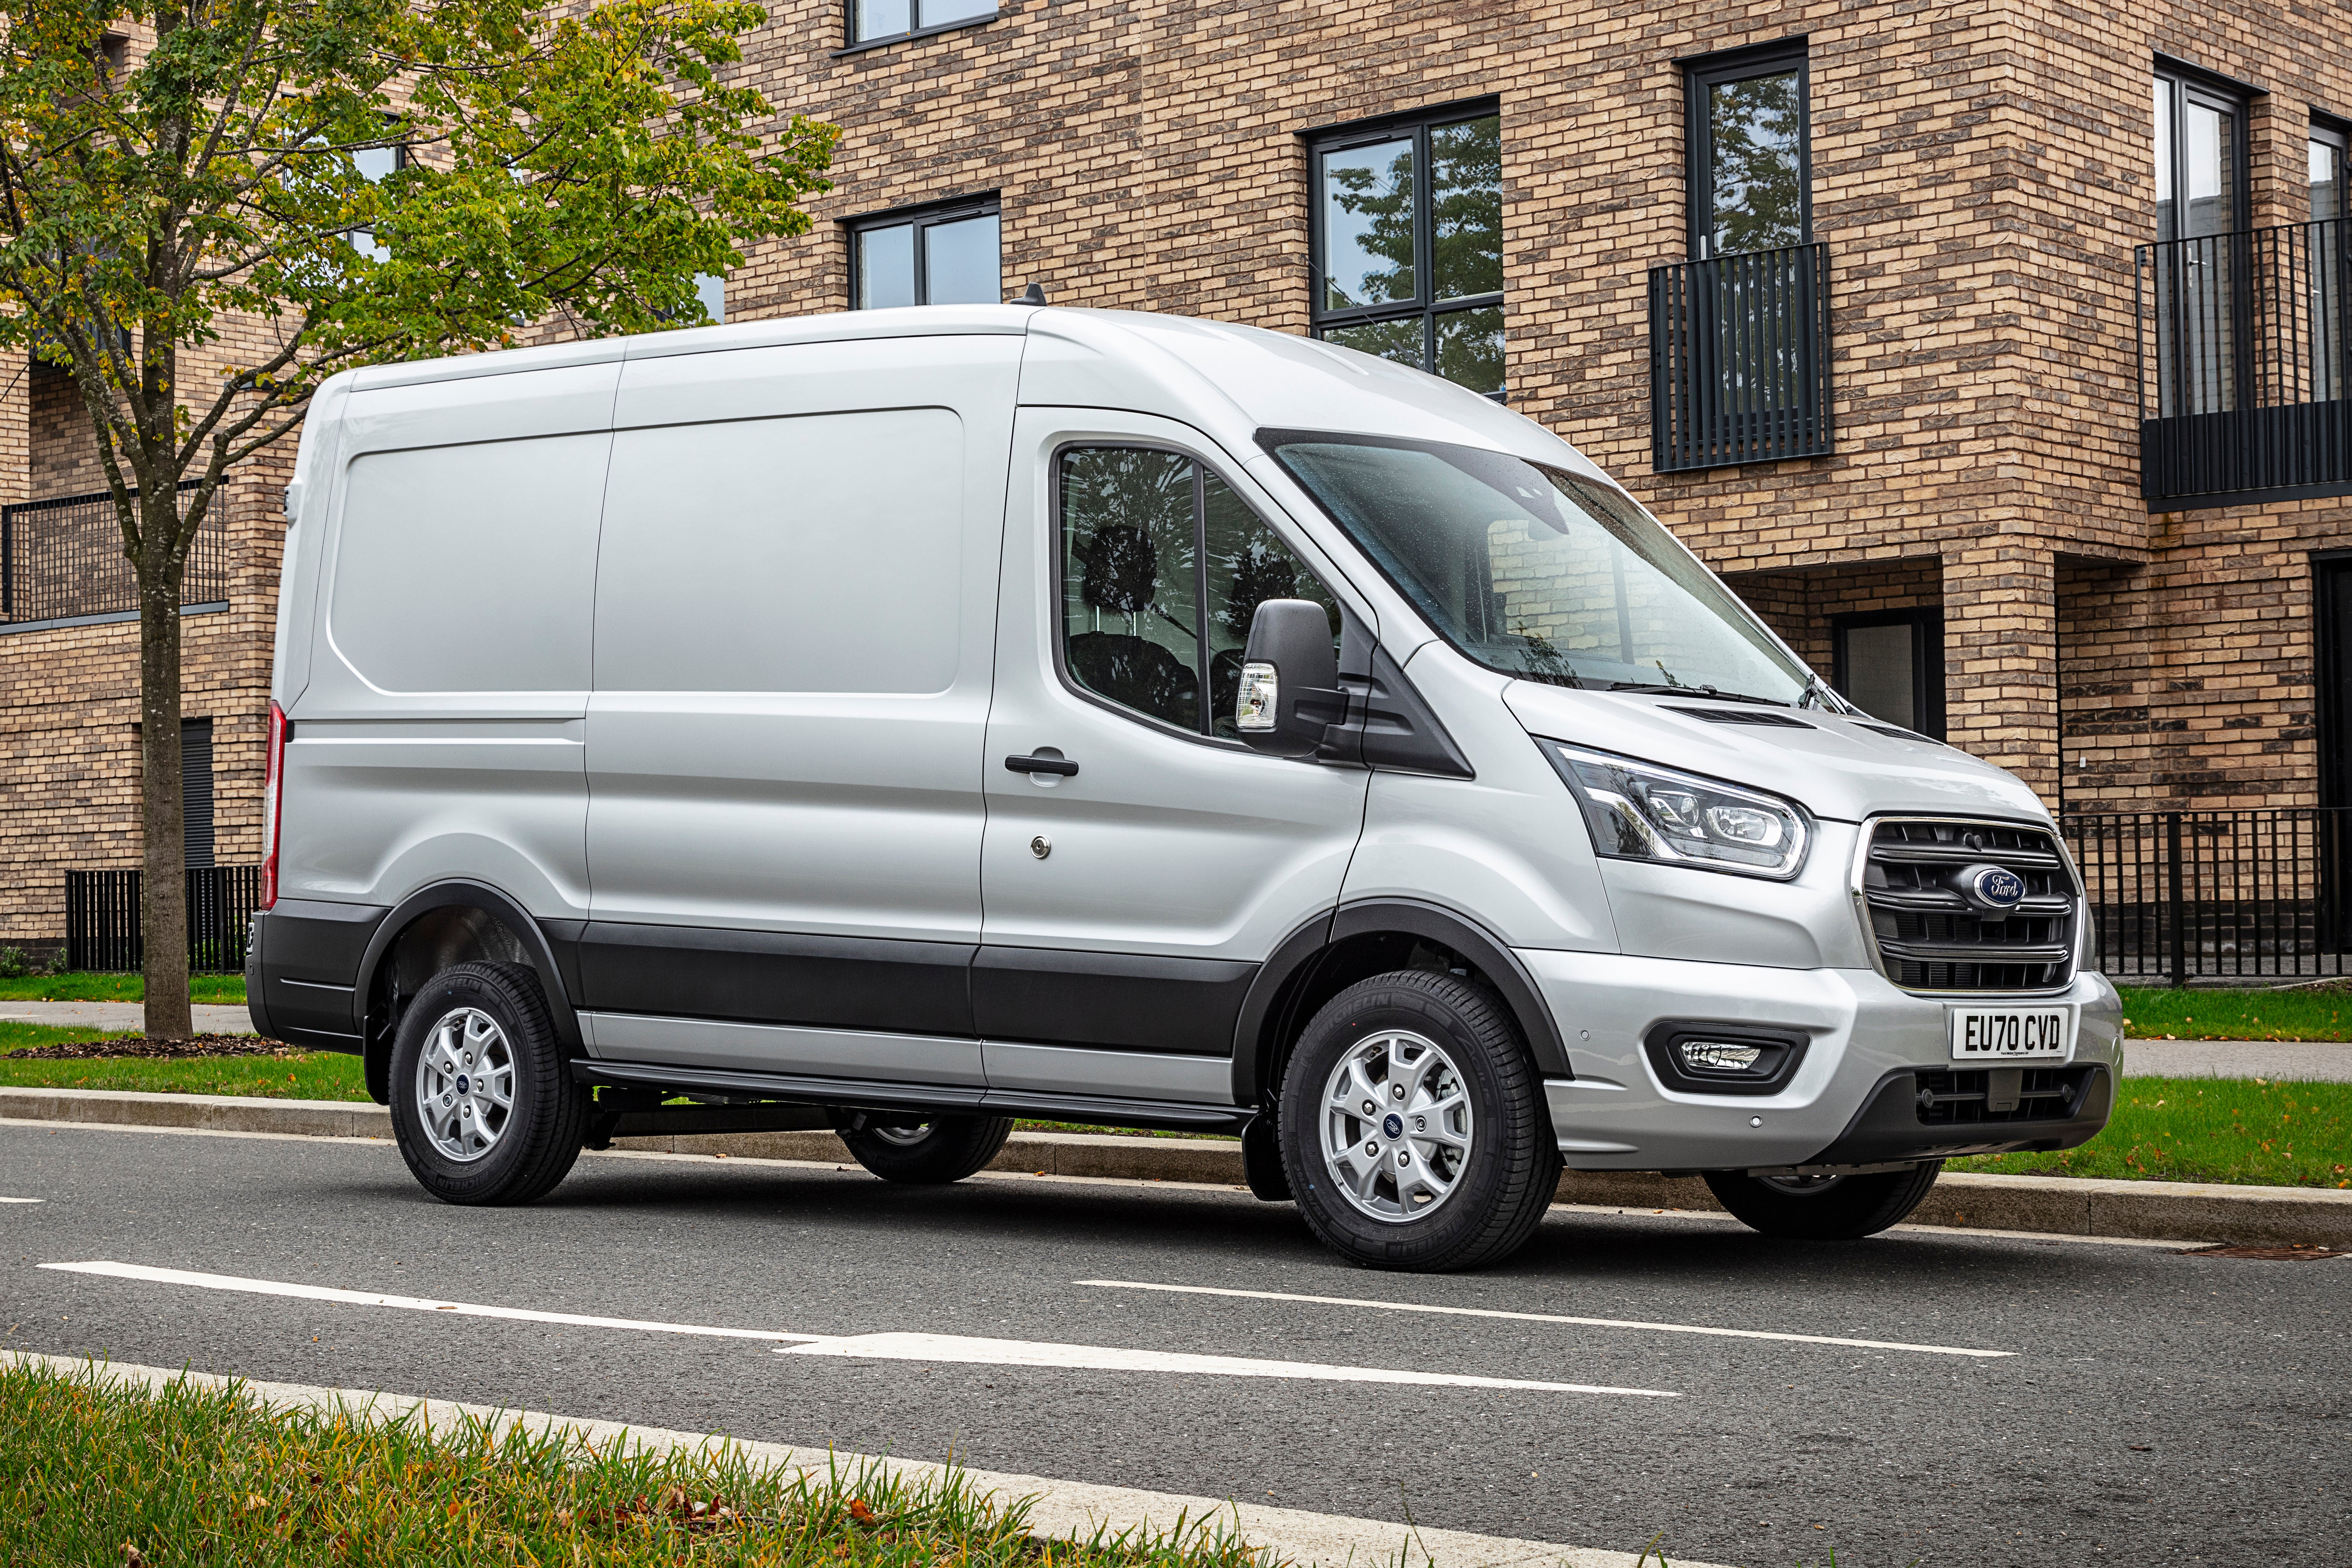 Ford Transit 2020 on road